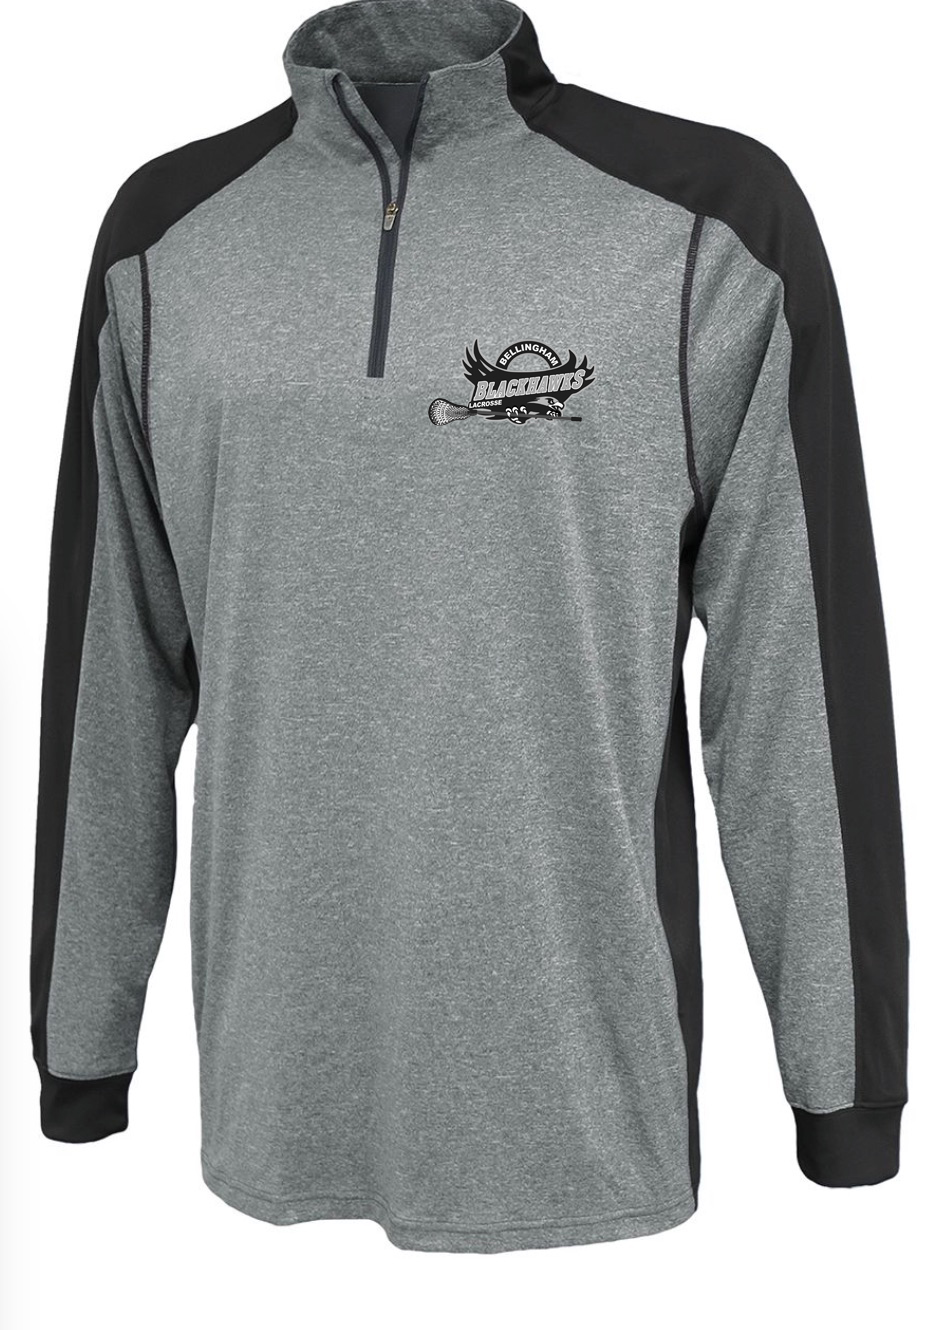 Bellingham Lacrosse Performance Quarter-Zip - From $35